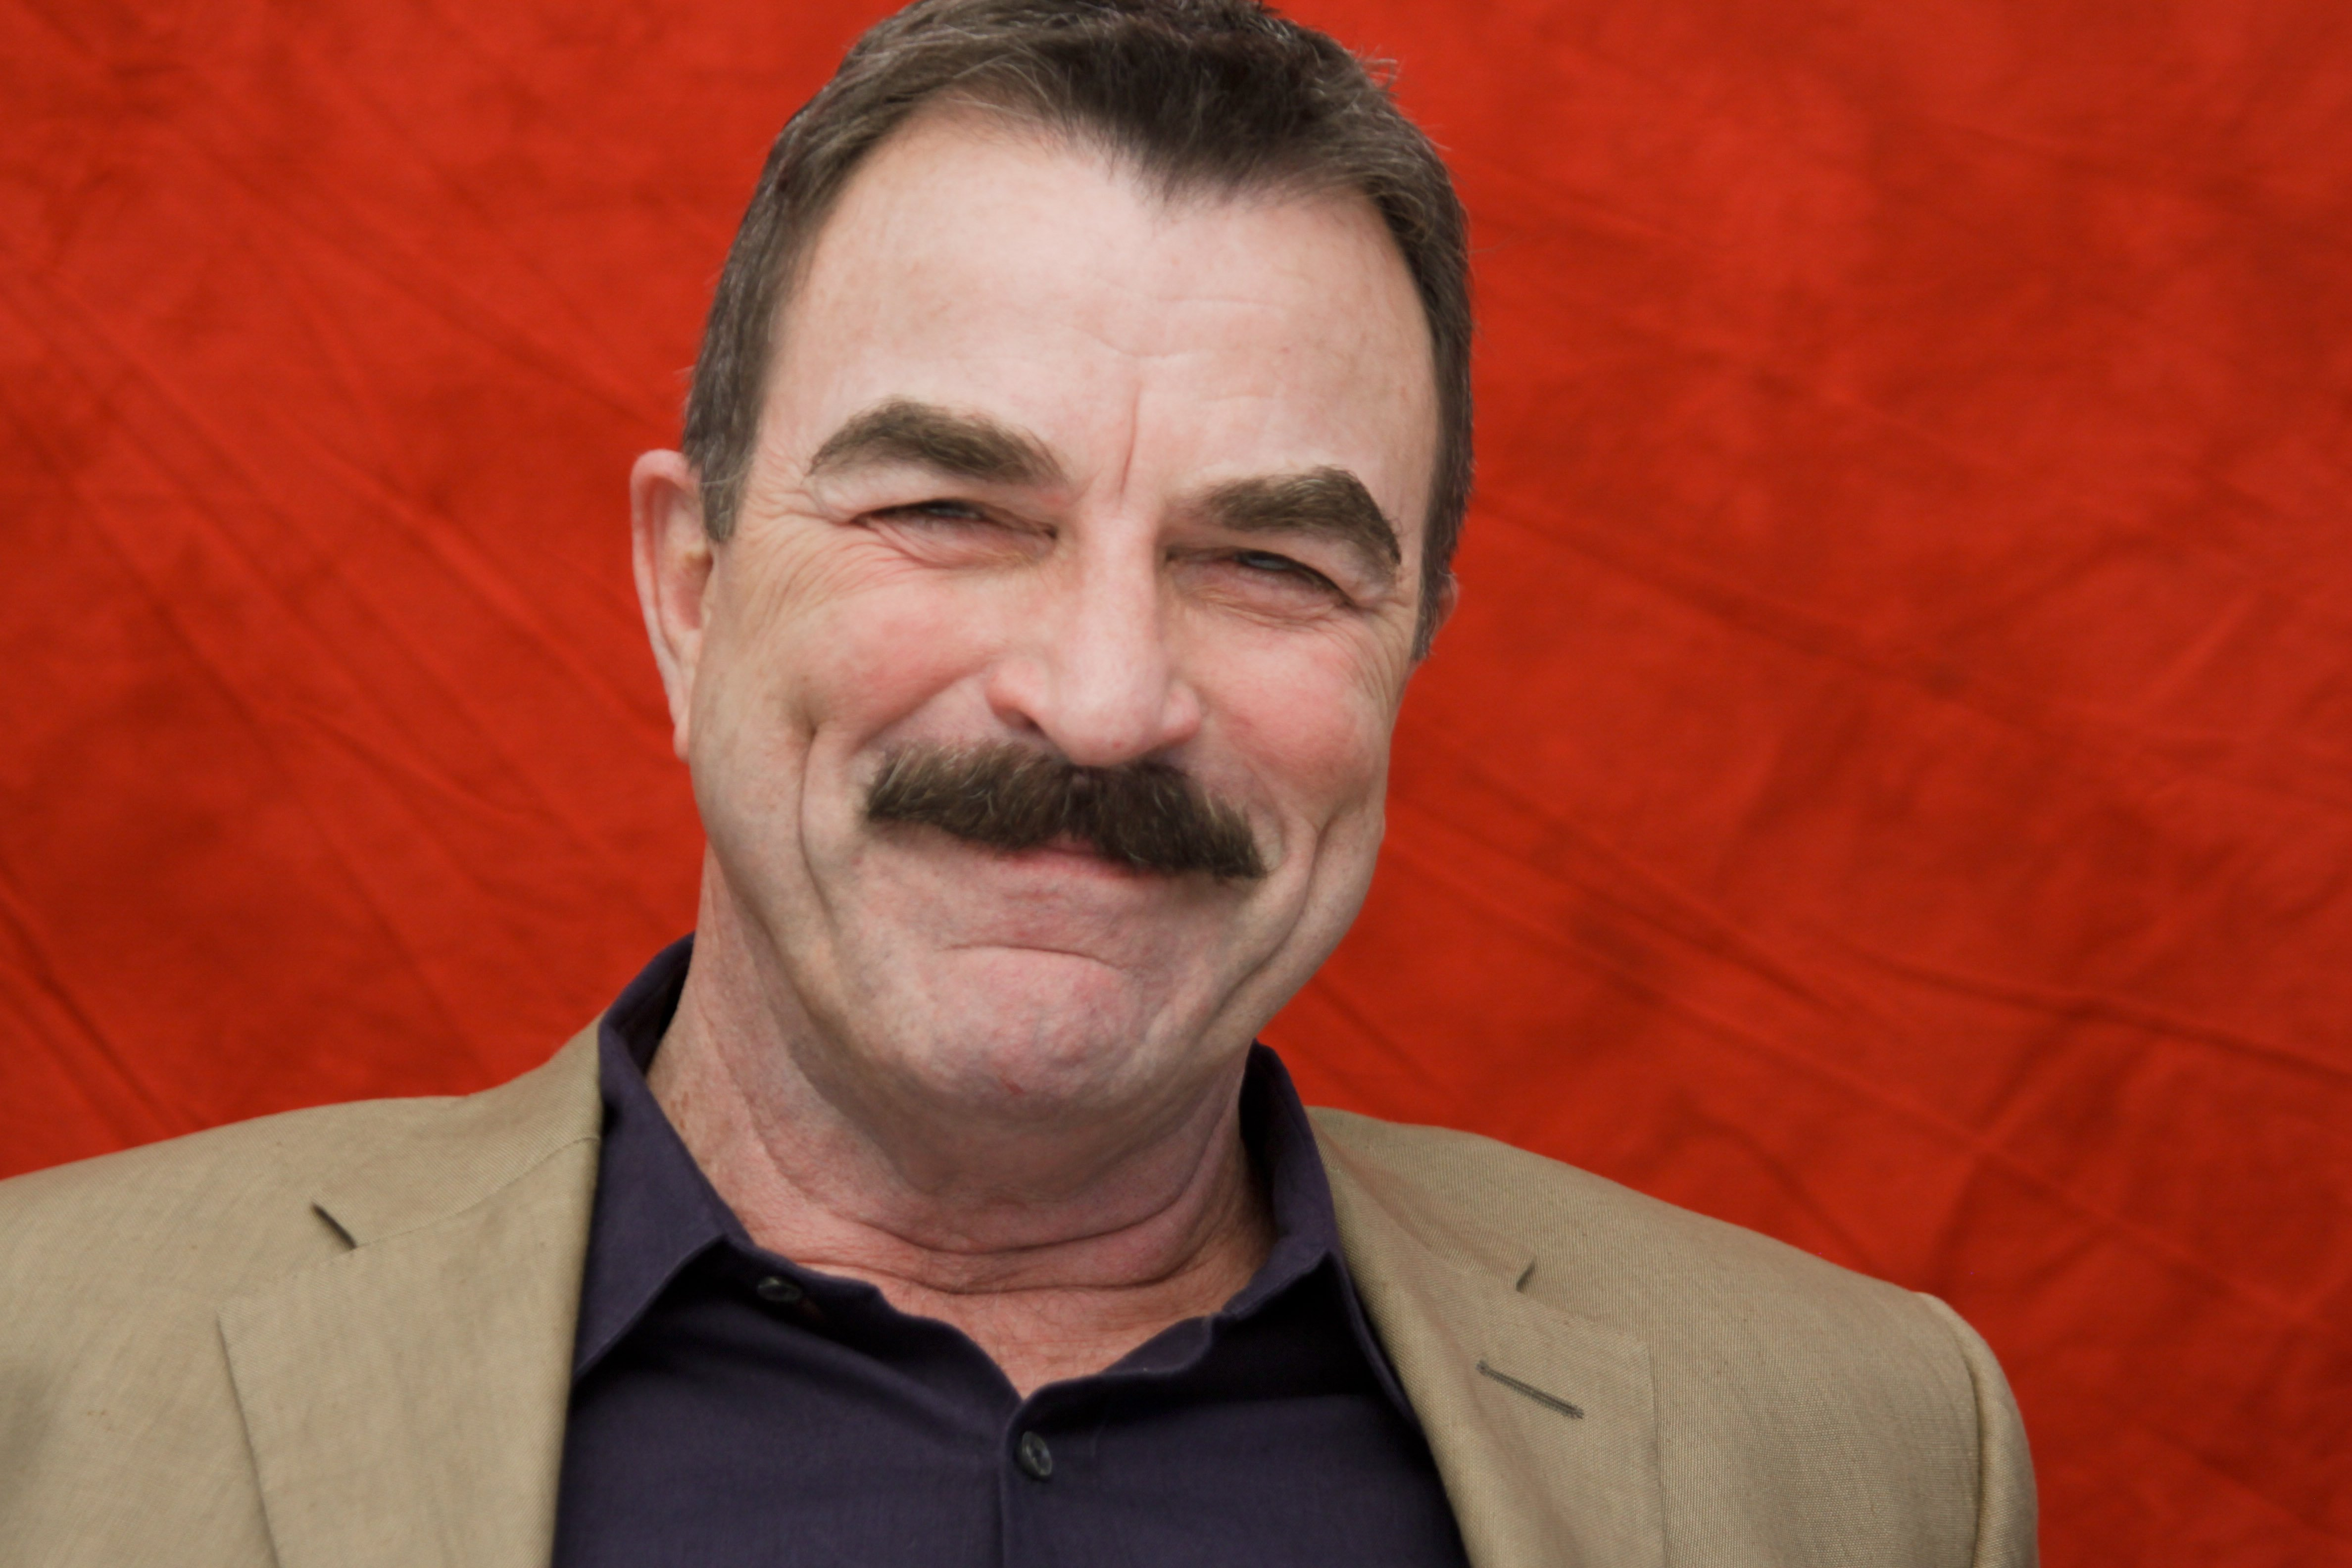 Tom Selleck during a portrait session in West Hollywood, California on August 16, 2010 | Photo: GettyImages